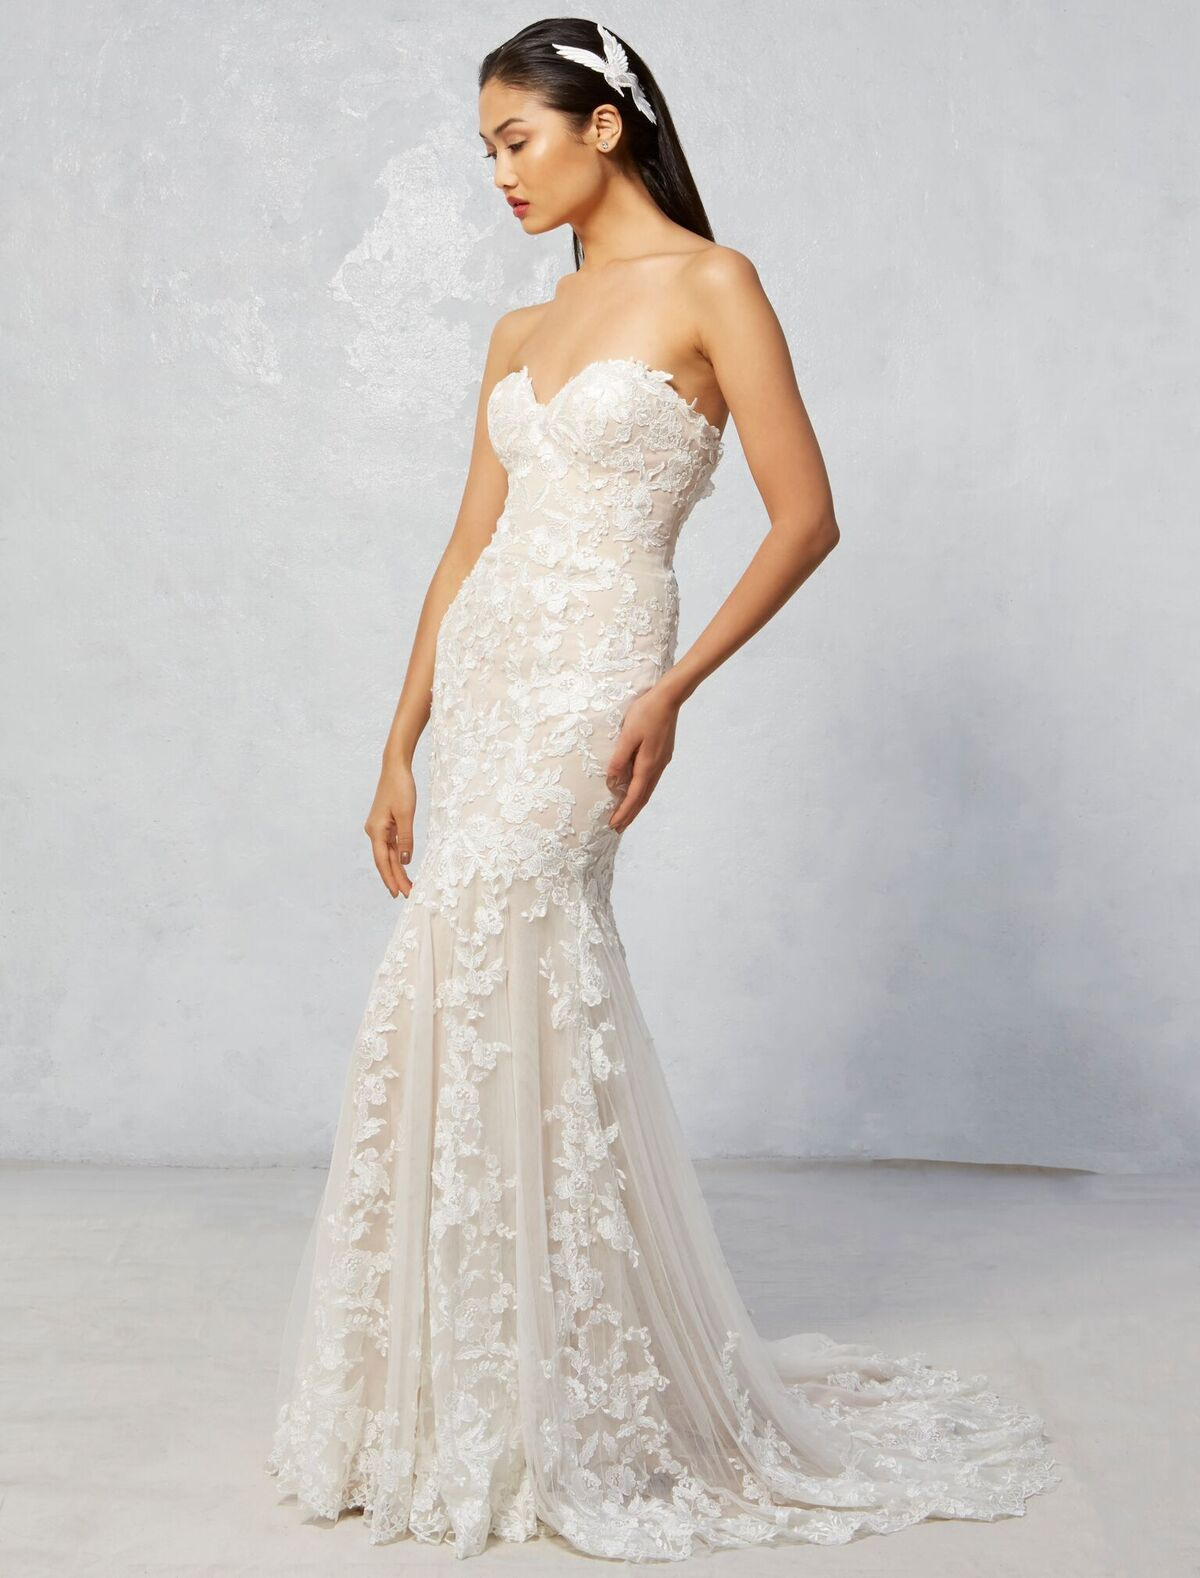 Raven | Ivy & Aster Fall 2017 Collection | strapless nude lace ...